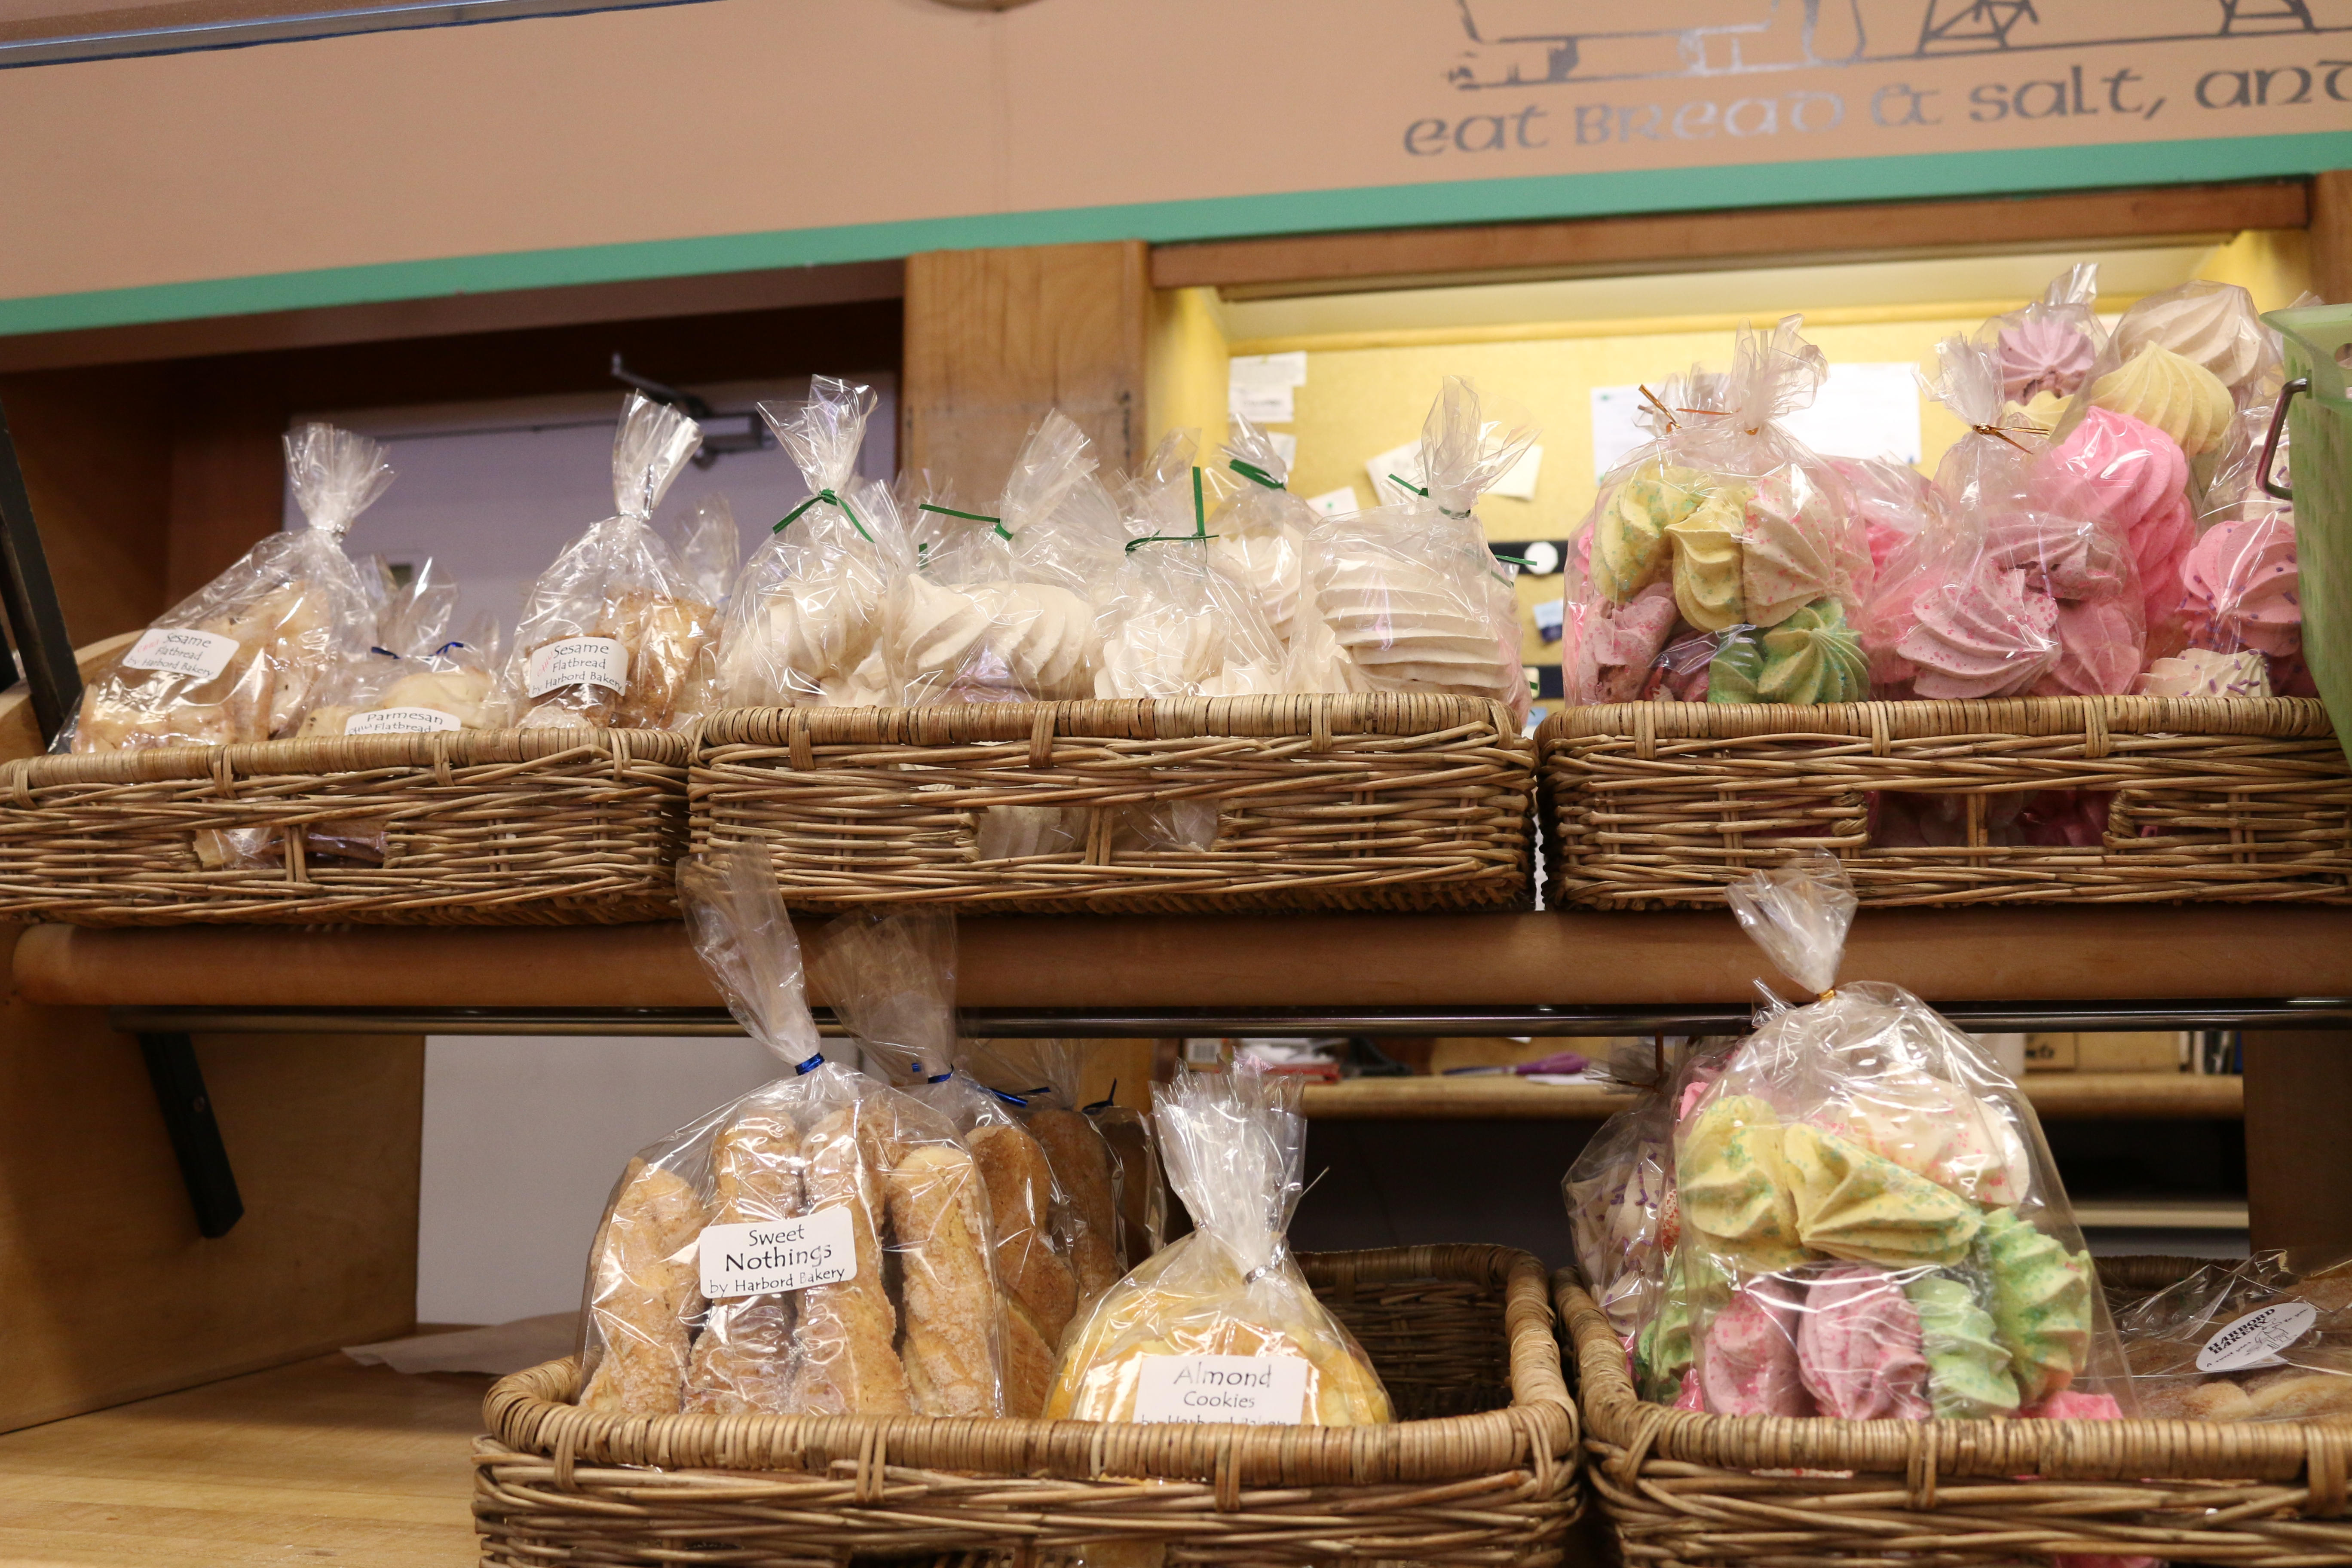 Packaged baked goods inside Harbord Bakery. Pictured are sweet nothings, almond cookies, and meringues in plastic bags inside wicker storage boxes.